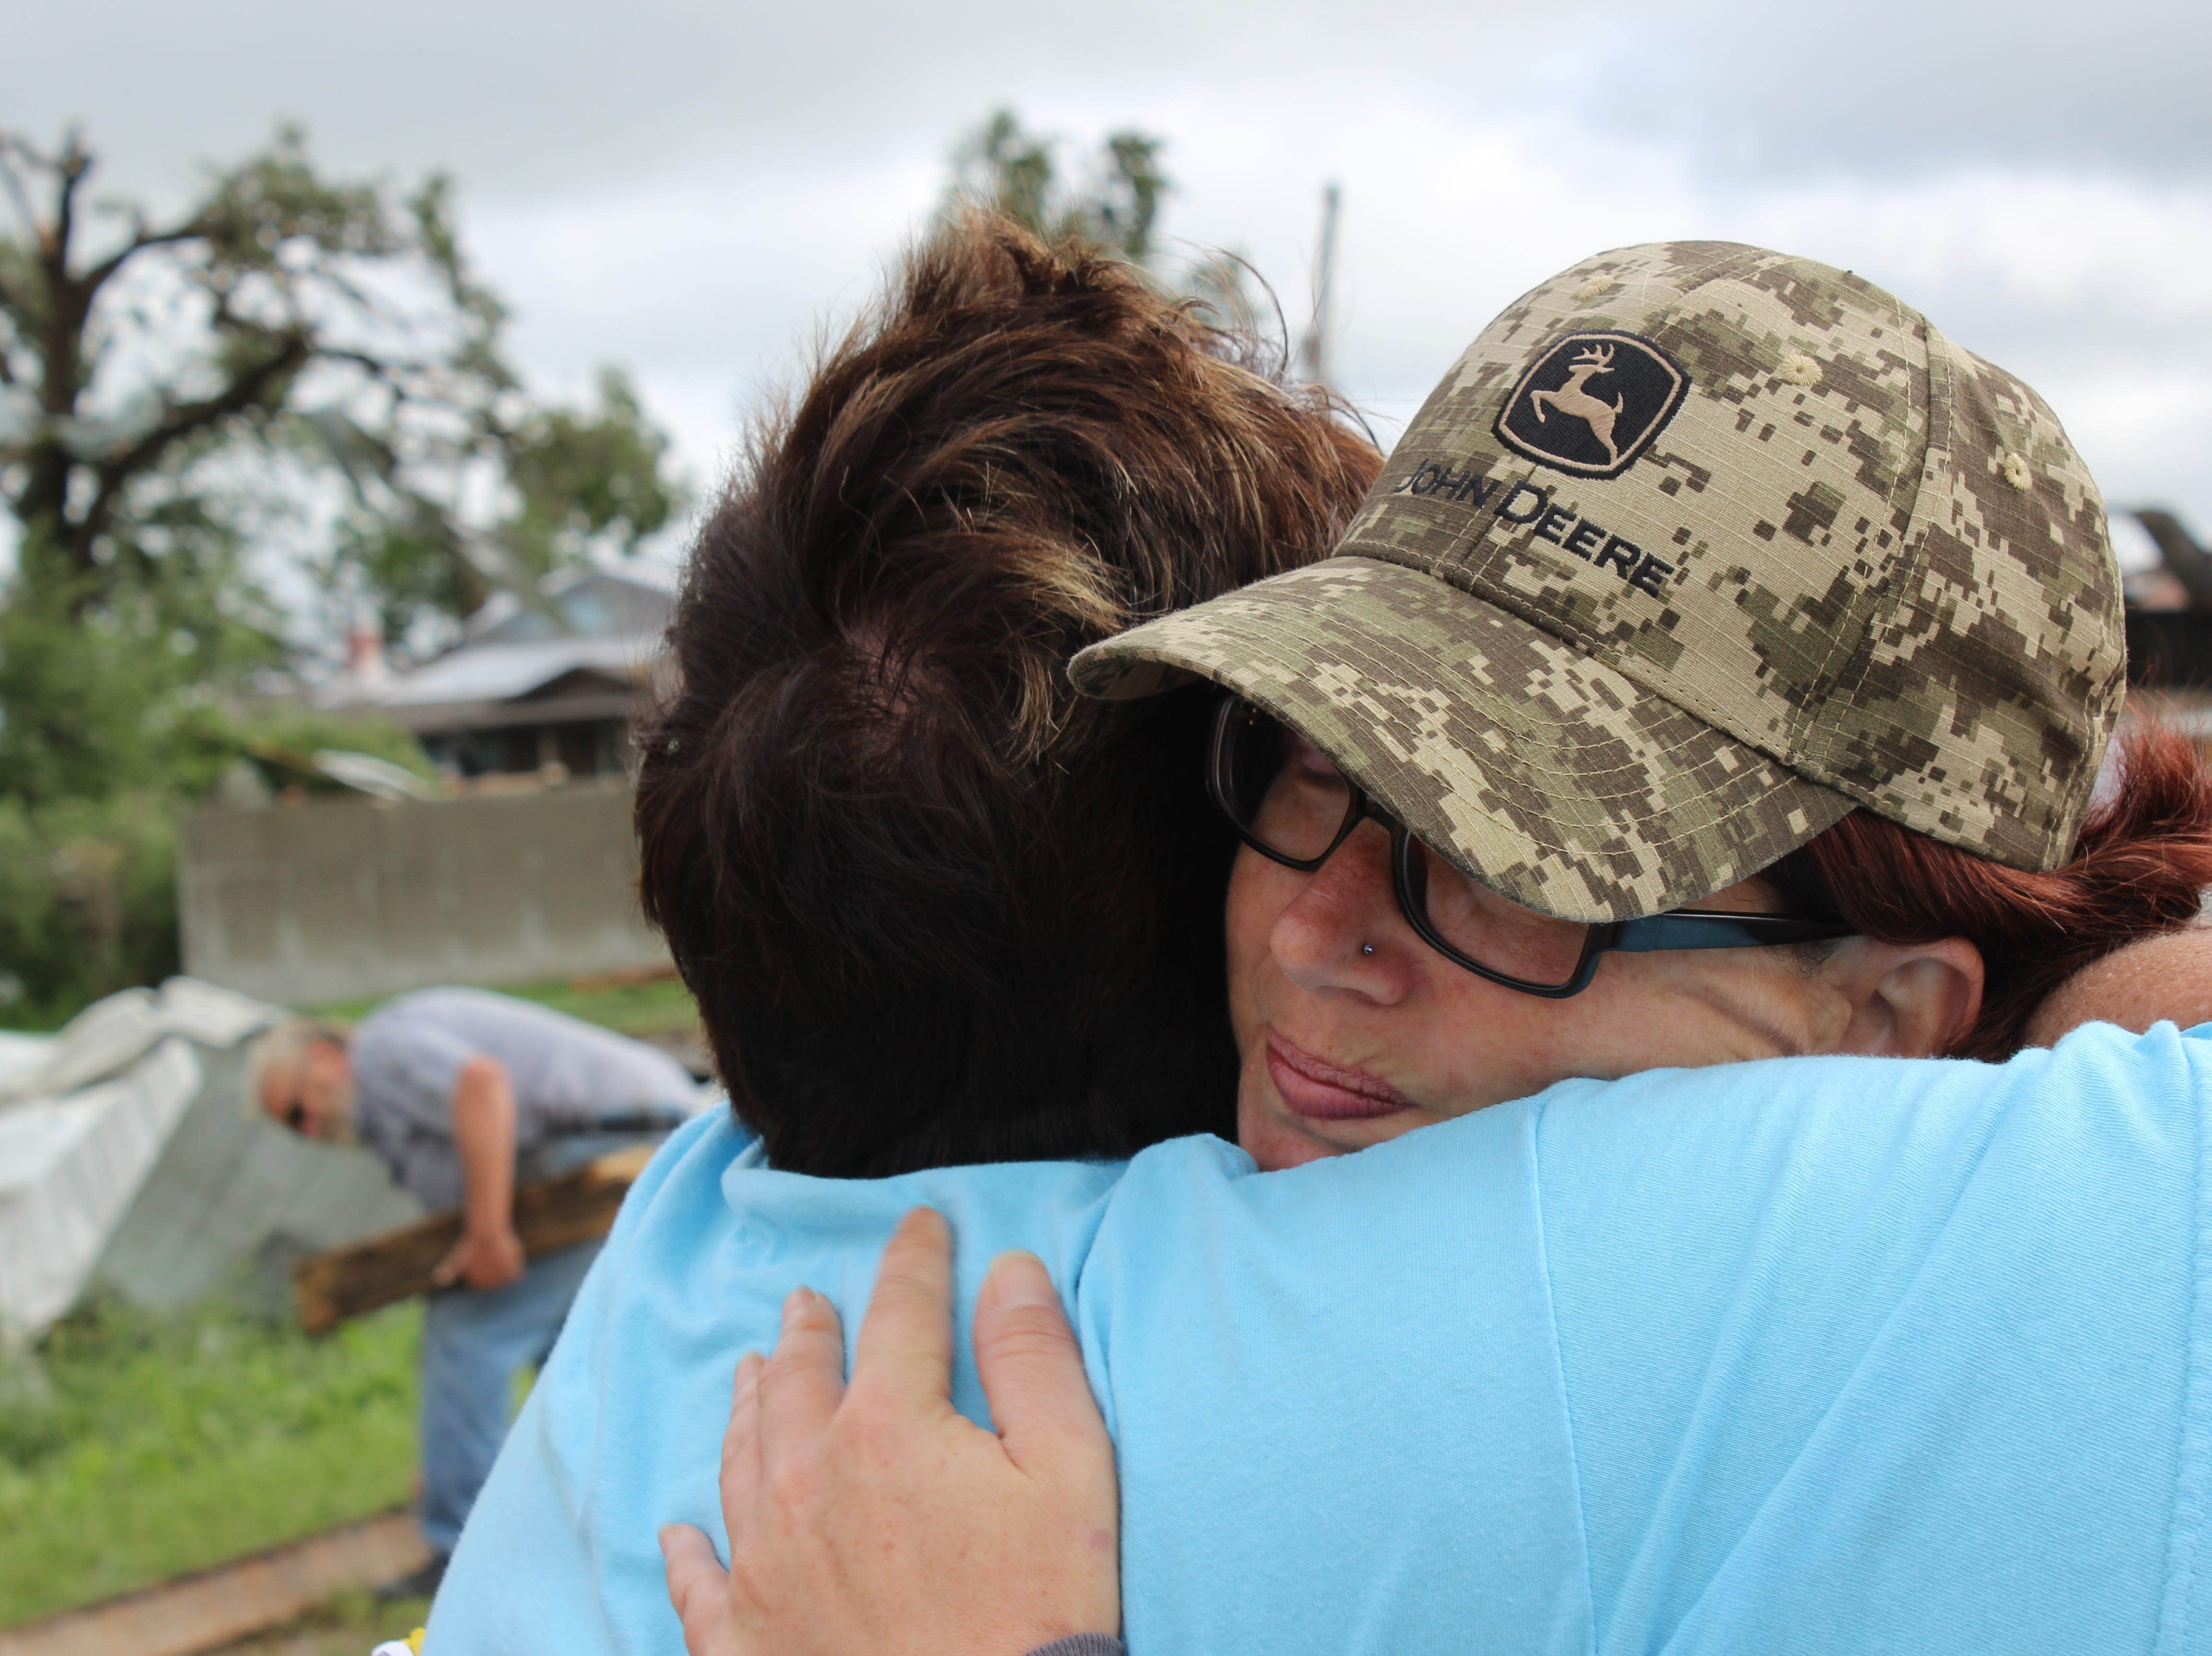 Waupun Agriculture teacher and FFA advisor Tari Costello (left) gives Danielle Wetzel a hug and some moral support as the Wetzel family copes with wide spread destruction on their family farm east of Alto.